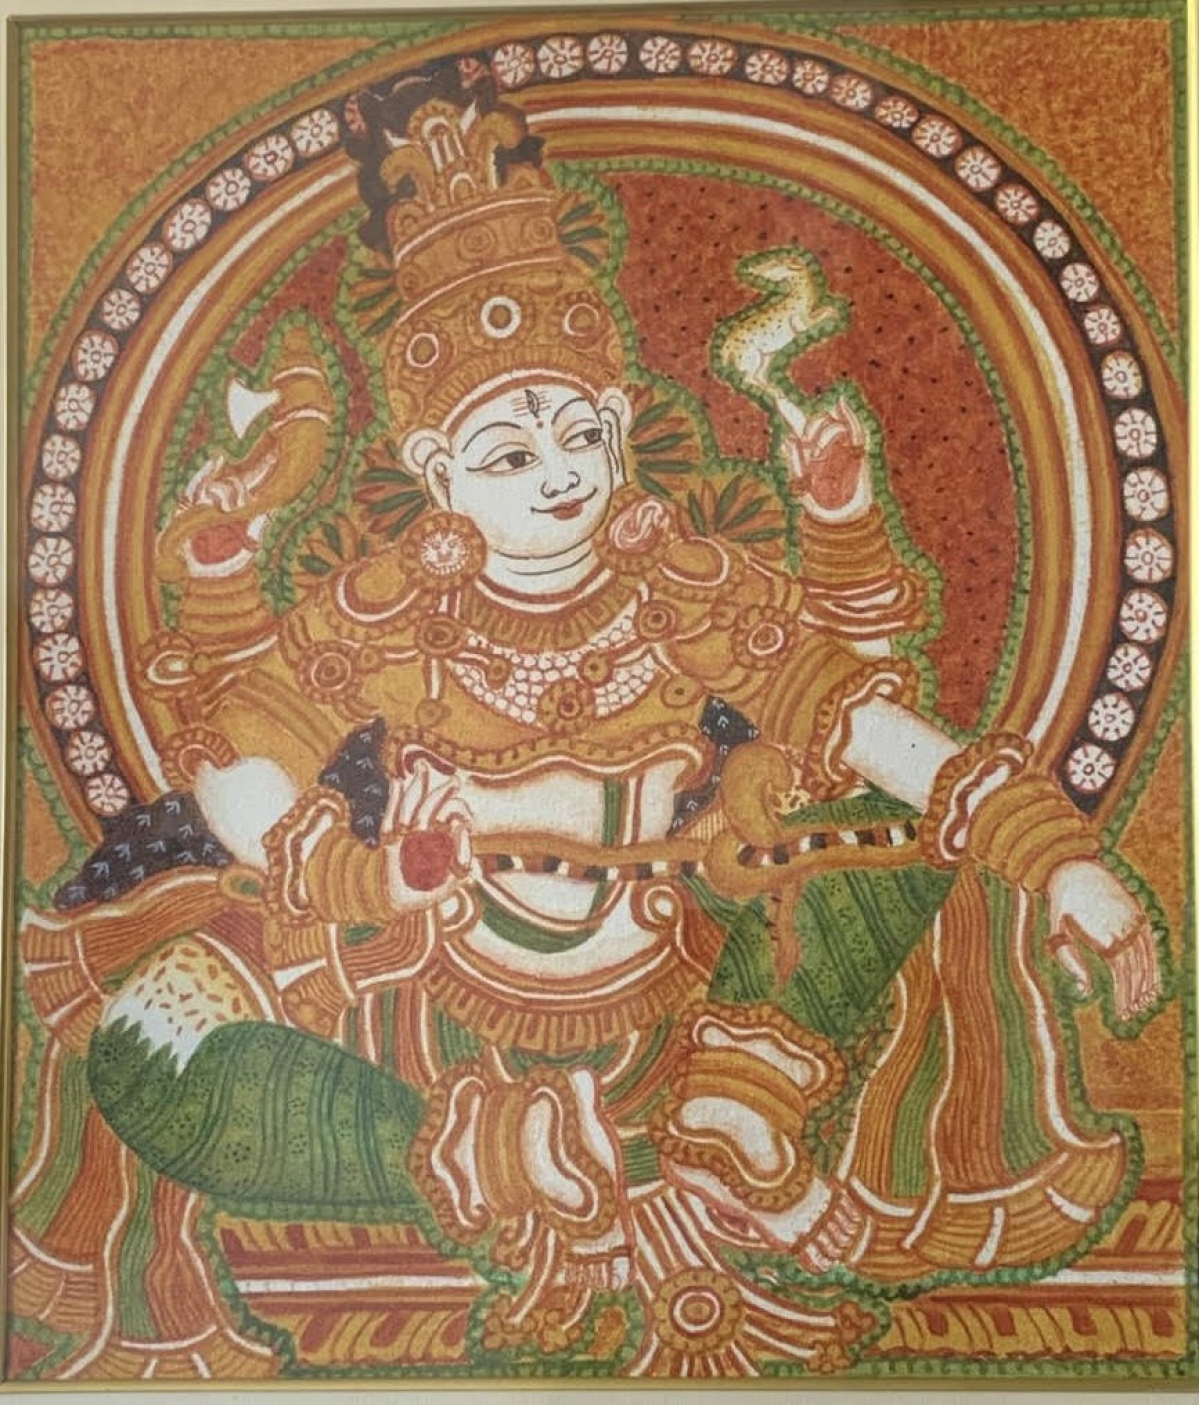 A mural painting by Jai Ganesh Ramnath